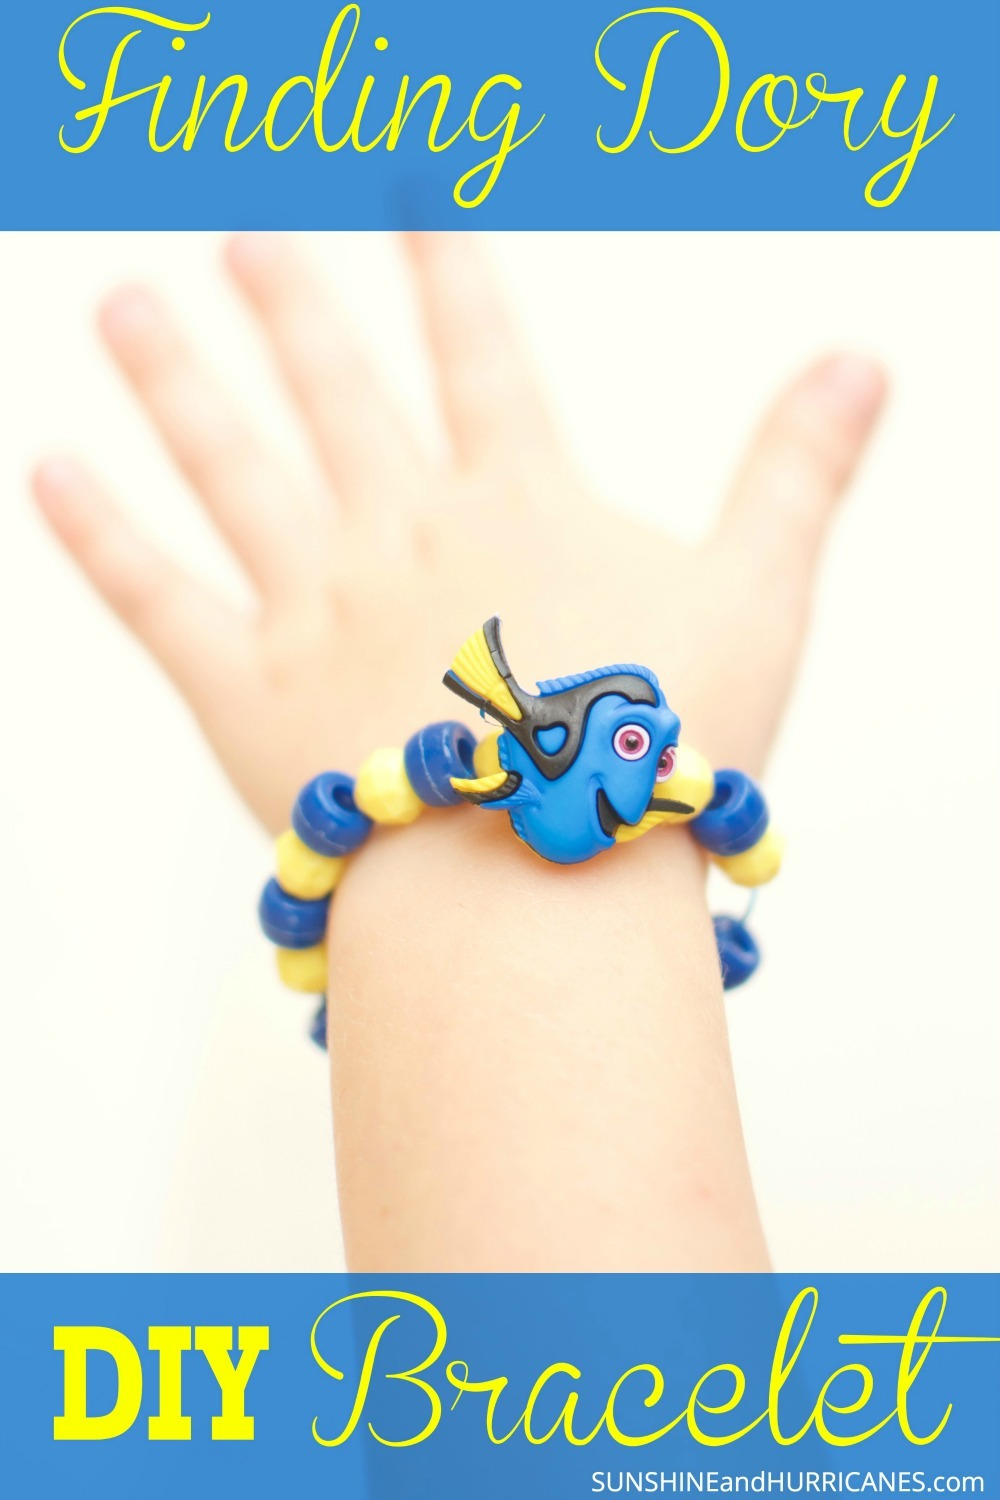 Here's a super cute and super easy Finding Dory craft for kids. Use it as an activity for a themed Birthday Party or something to do on a rainy day. Finding Dory Bracelet from SunshineandHurricanes.com There is also a finding Nemo one too!